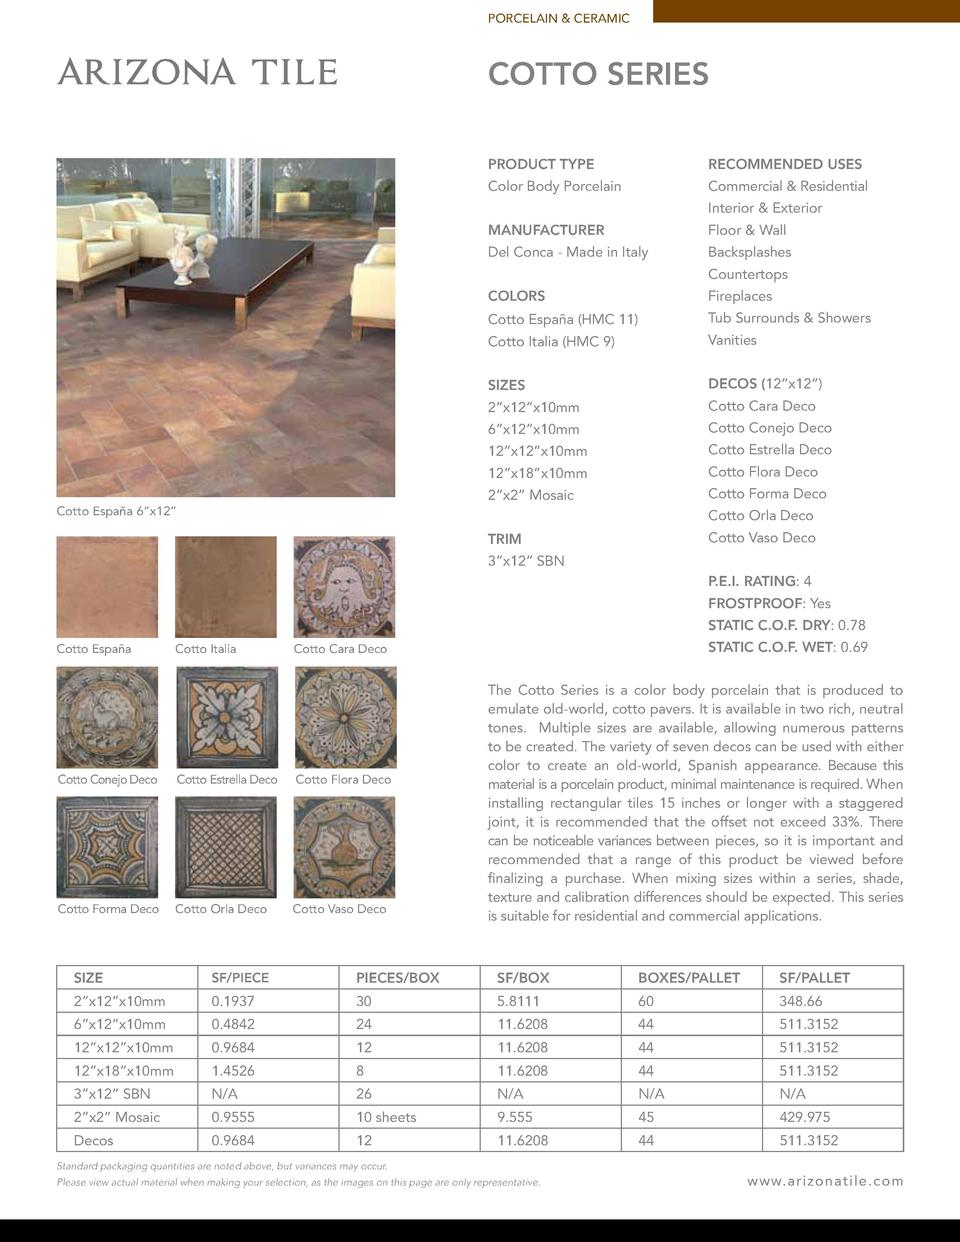 PORCELAIN   CERAMIC  COTTO SERIES PRODUCT TYPE  RECOMMENDED USES  Color Body Porcelain  Commercial   Residential Interior ...